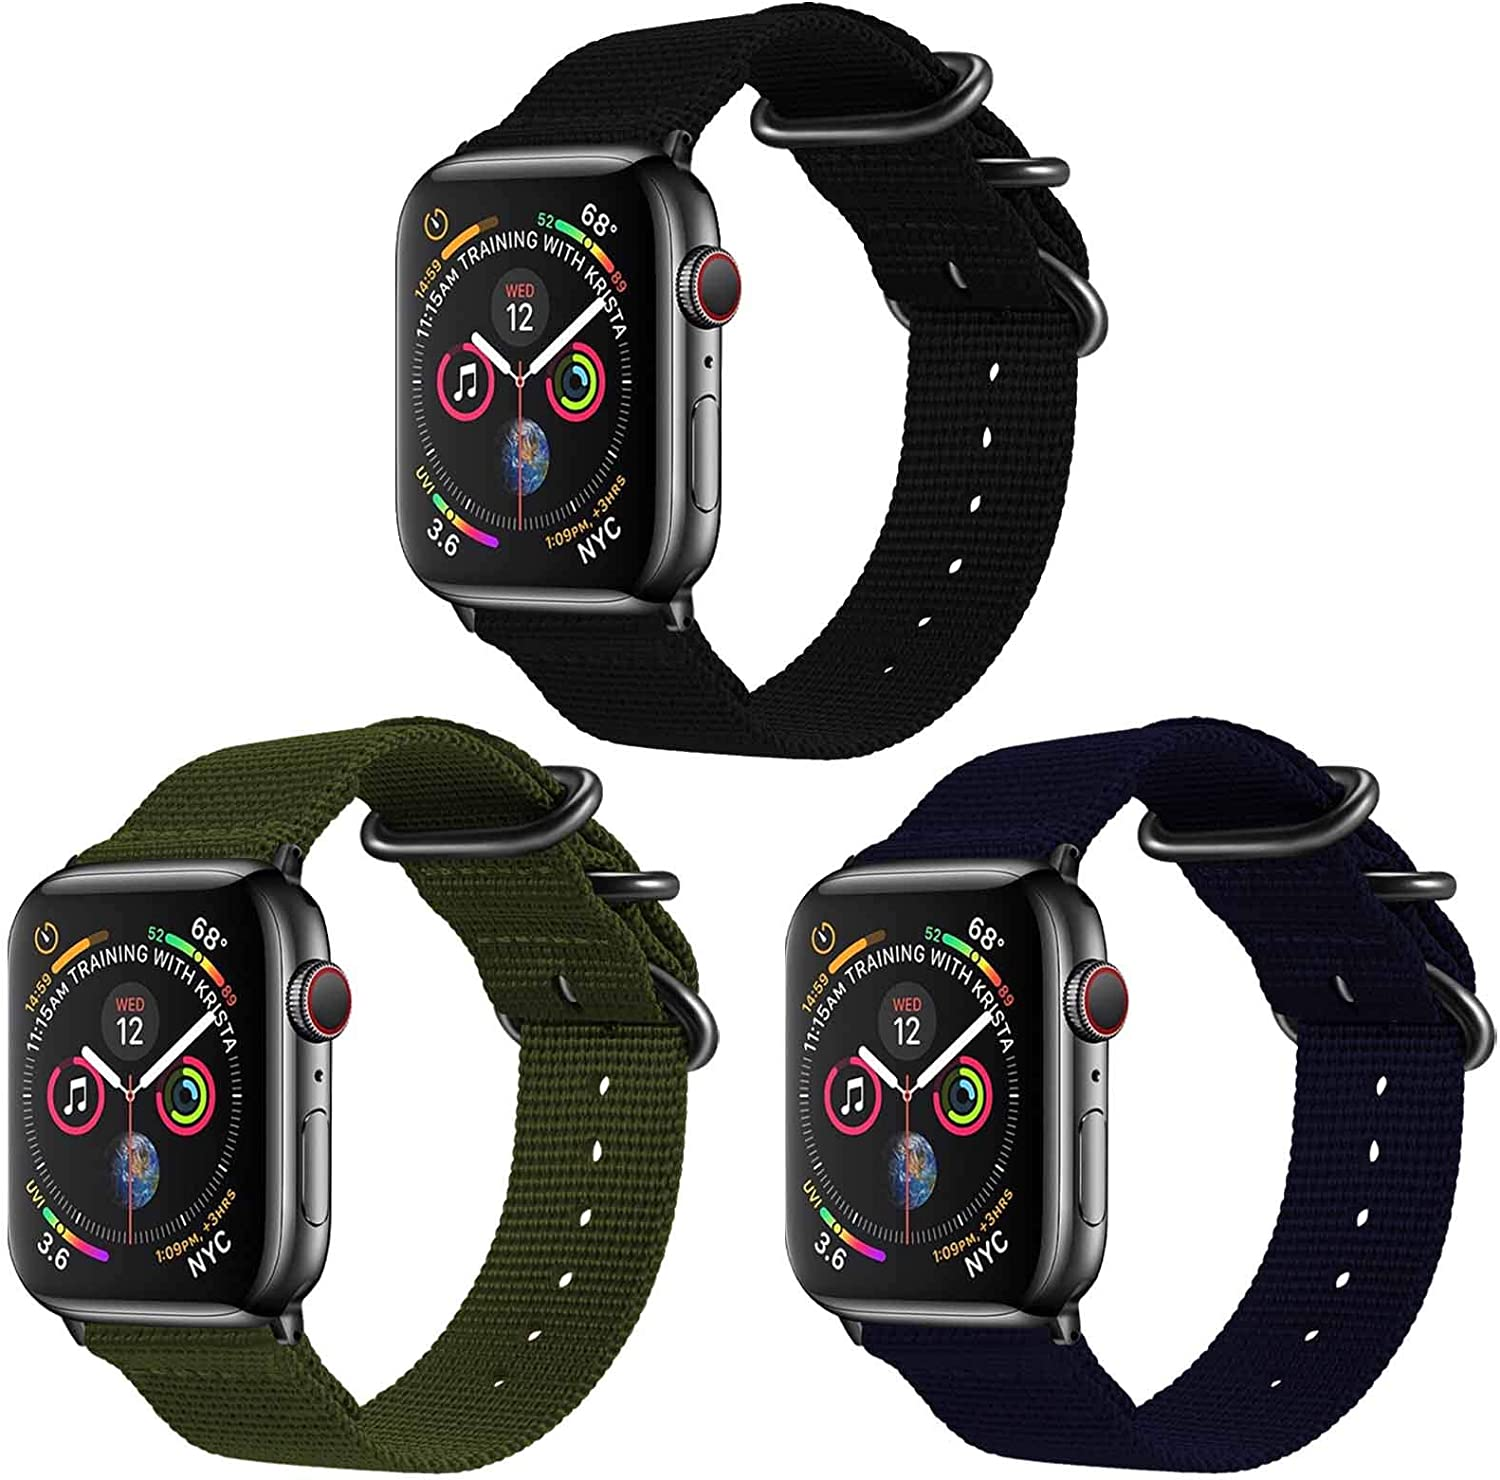 TopPerfekt Nylon Band Compatible with Apple Watch 44mm 42mm, Lightweight Breathable Woven Nylon Sport Wrist Strap, Suitable for iWatch Series 6 5 4 3 2 1 SE (3-Black/Army Green/Navy, 42mm/44mm)